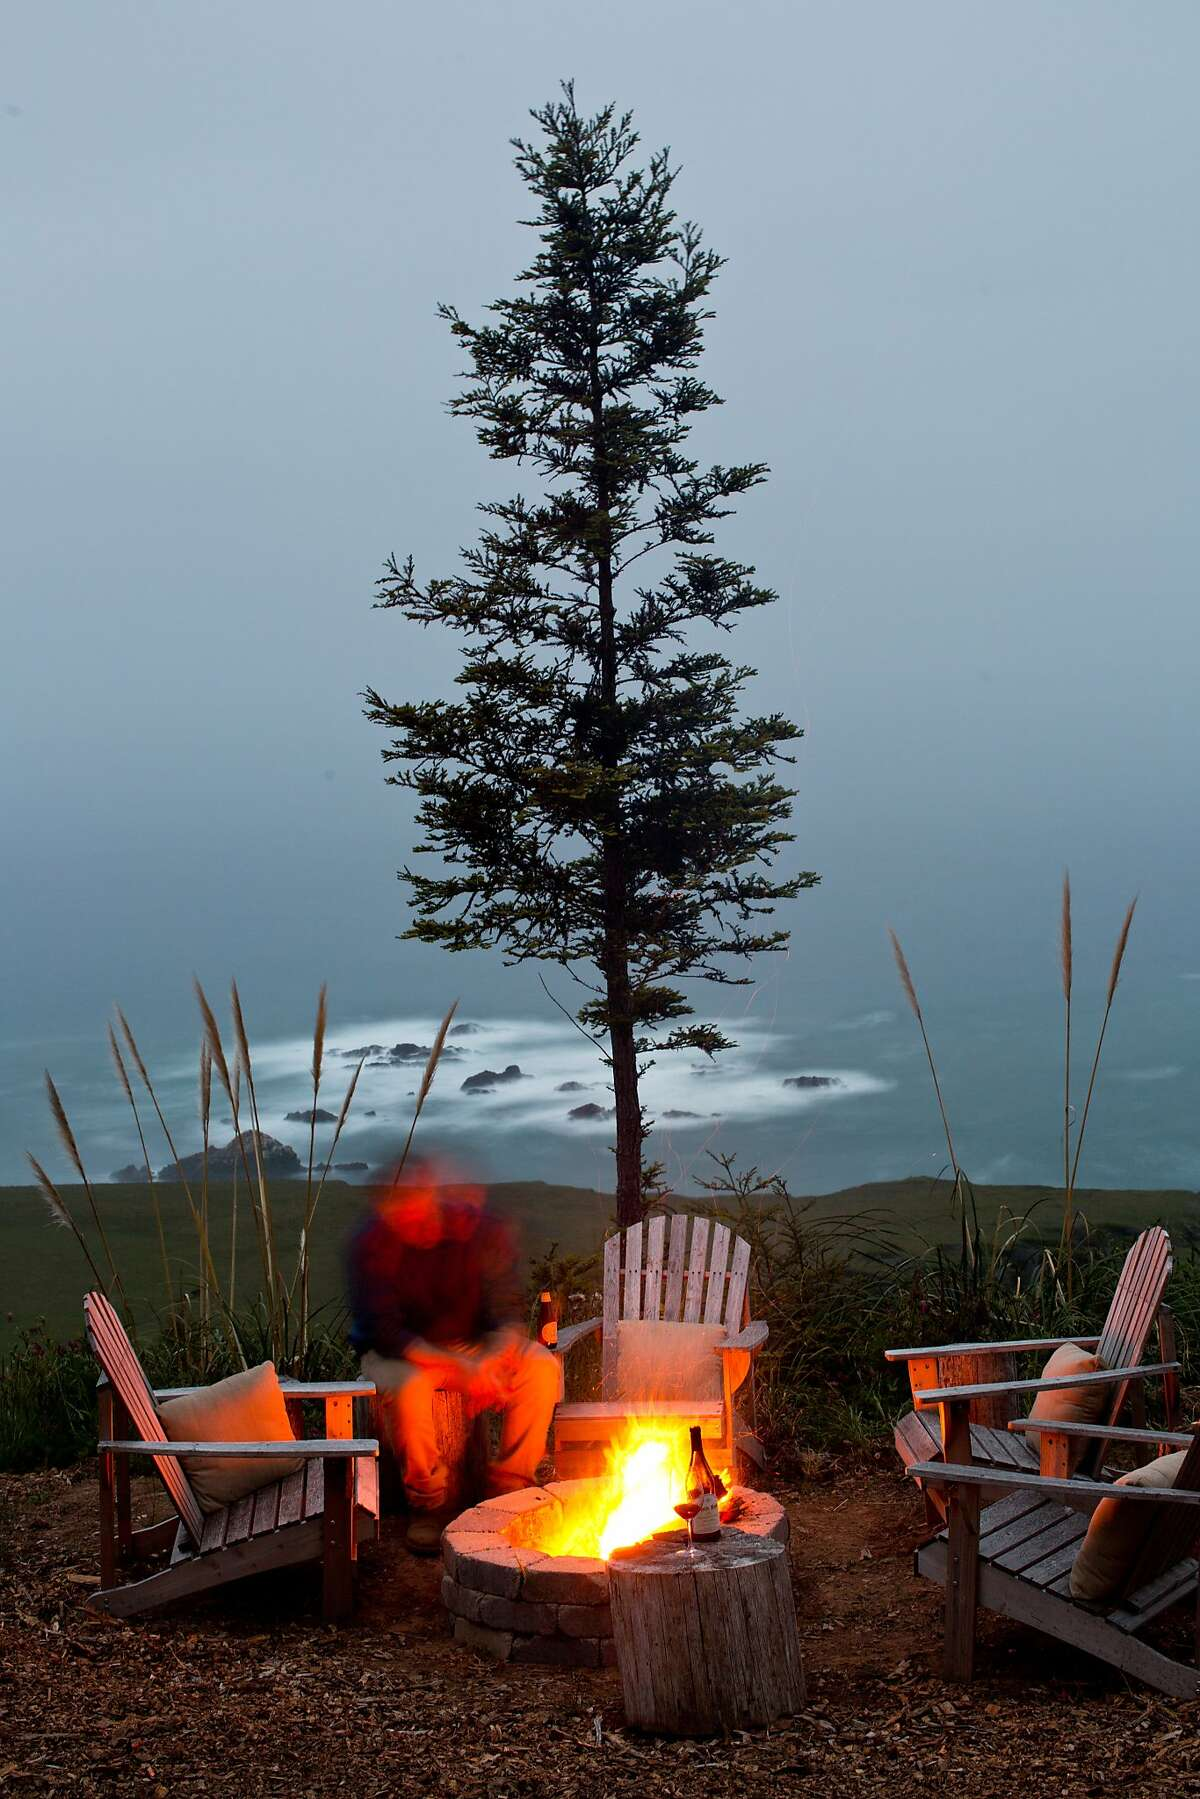 """Stewart's Point store has set up a number of """"glamping"""" tents overlooking the ocean with luxurious bedding and wood fireplace for heat on the coast of Sonoma County, Calif., Monday, April 21, 2014. Here a fire pit overlooks the coastline to Stewarts Point."""